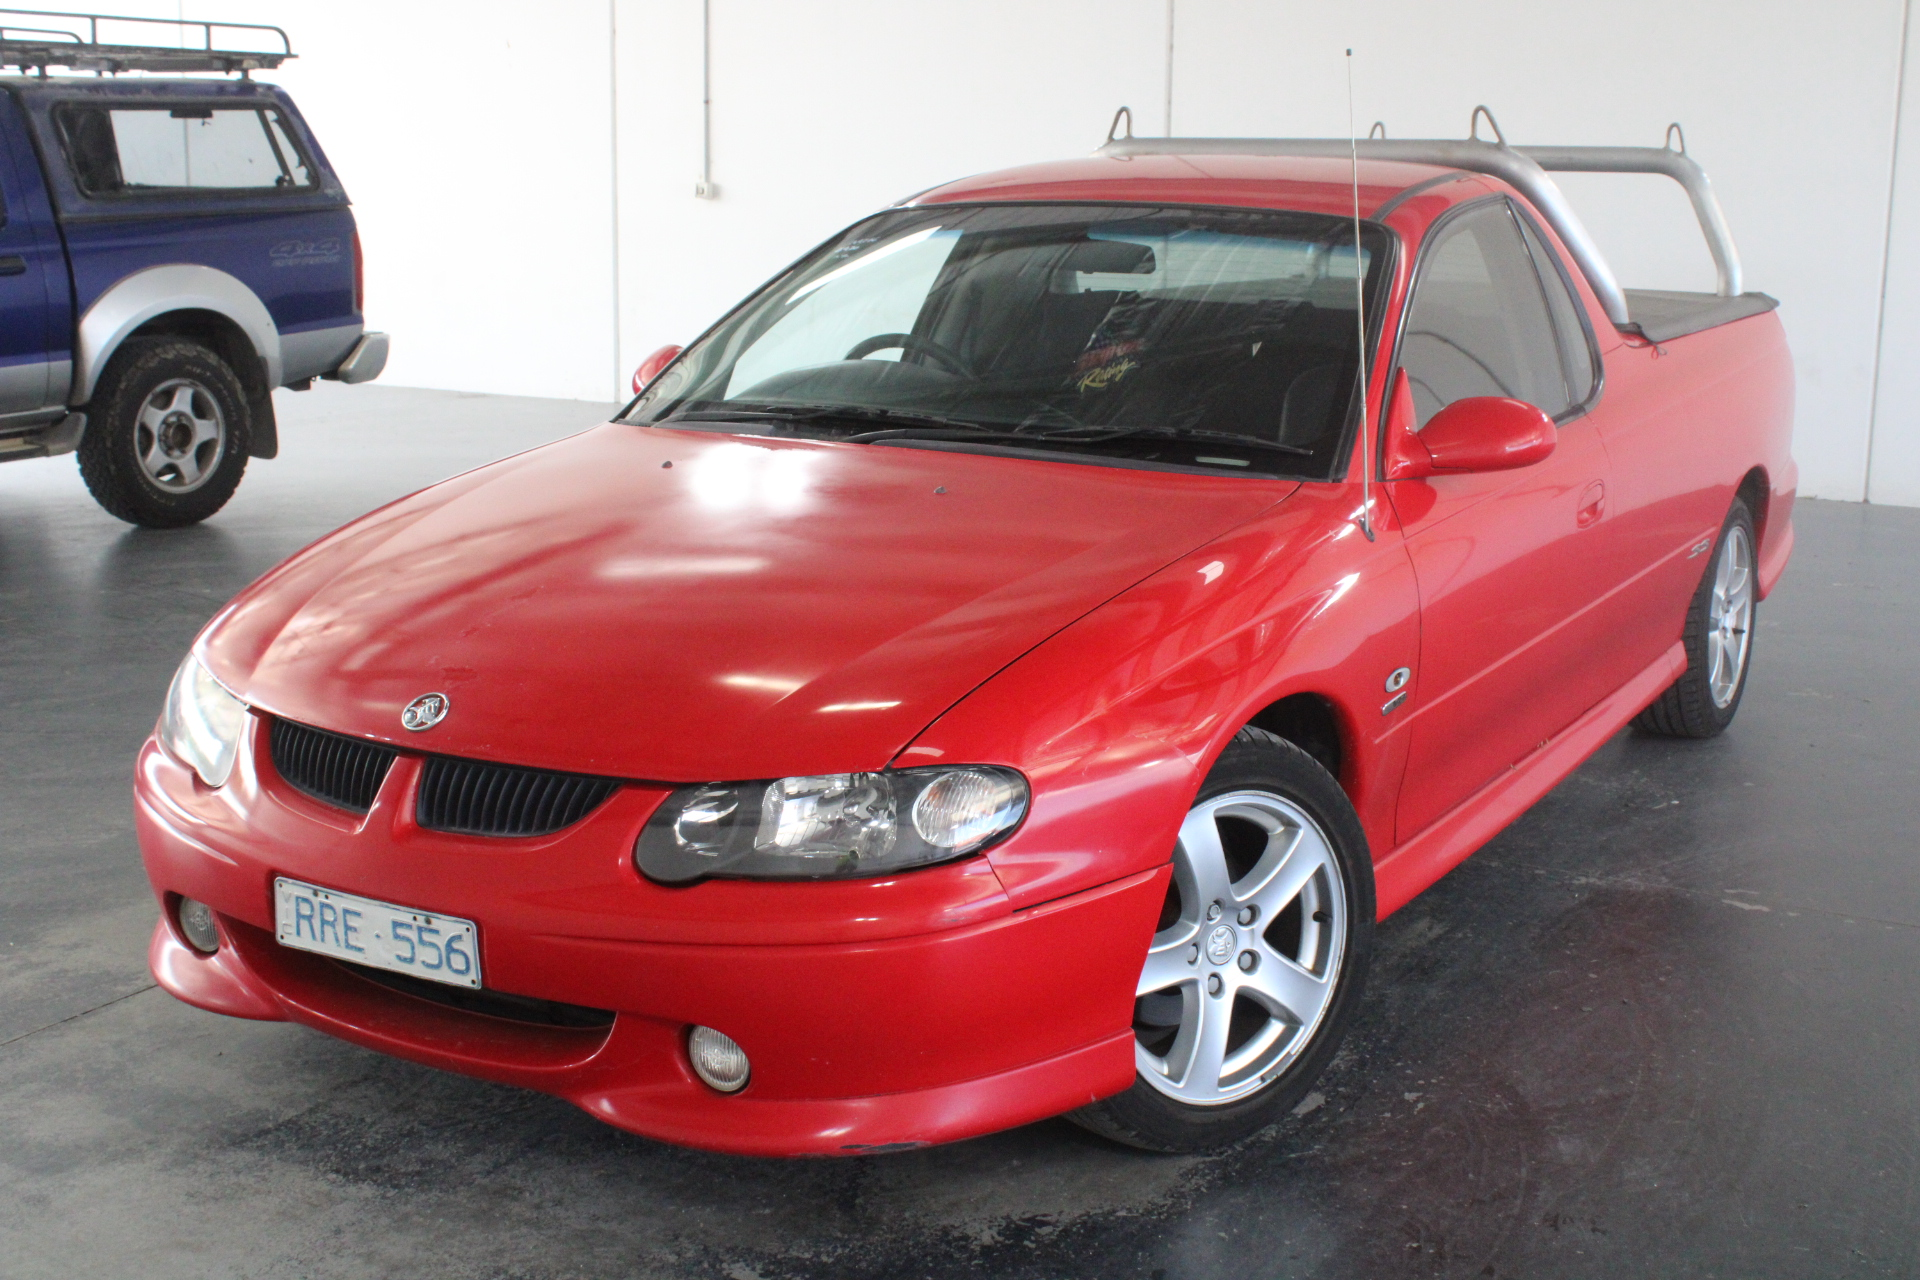 2002 Holden Commodore SS VU Automatic Ute